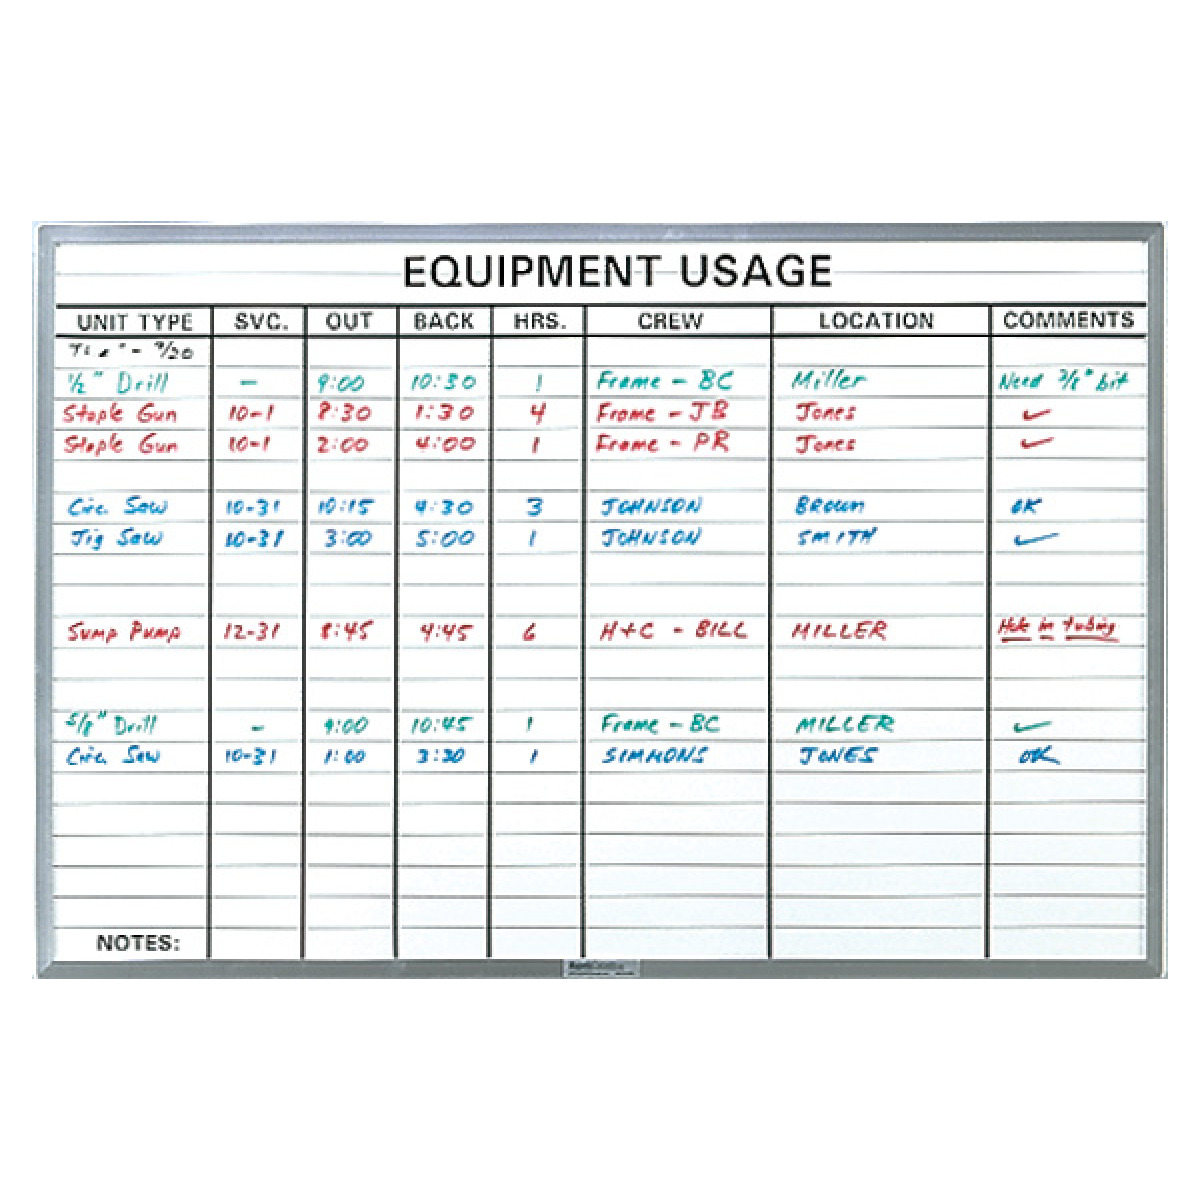 lined whiteboard for reviewing equipment usage